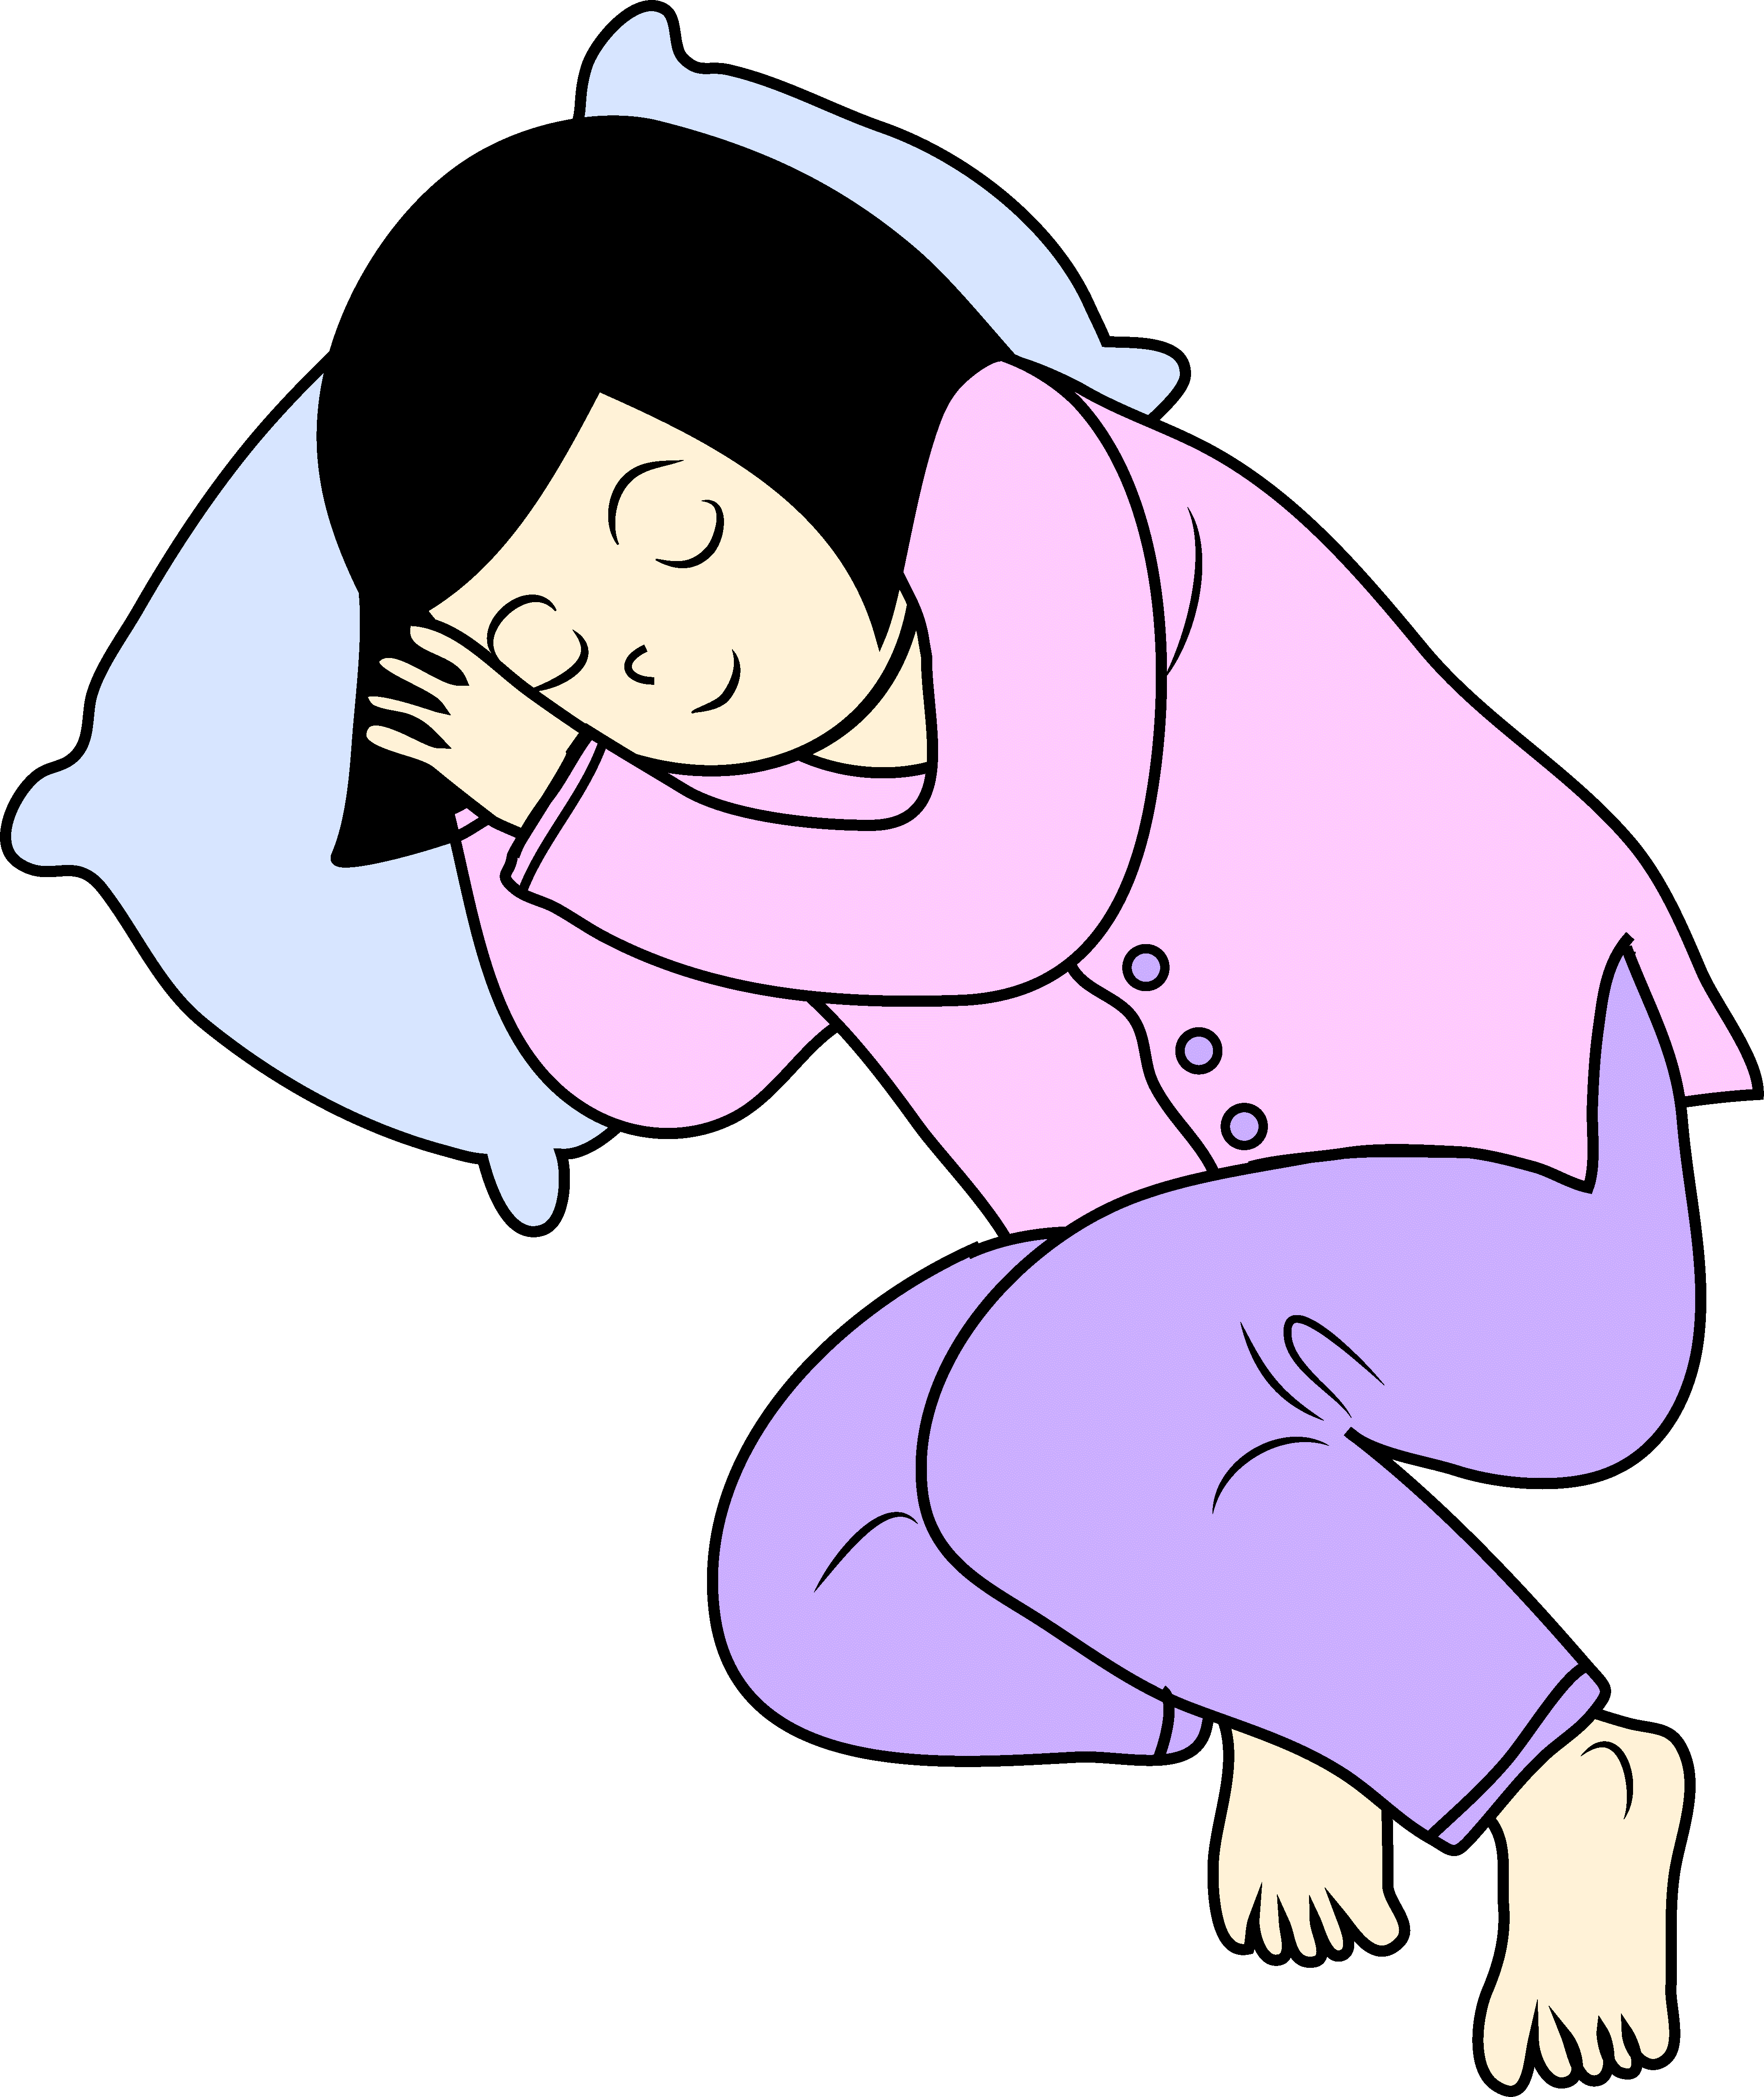 Sleepy drawing couple. Clipart clip art library